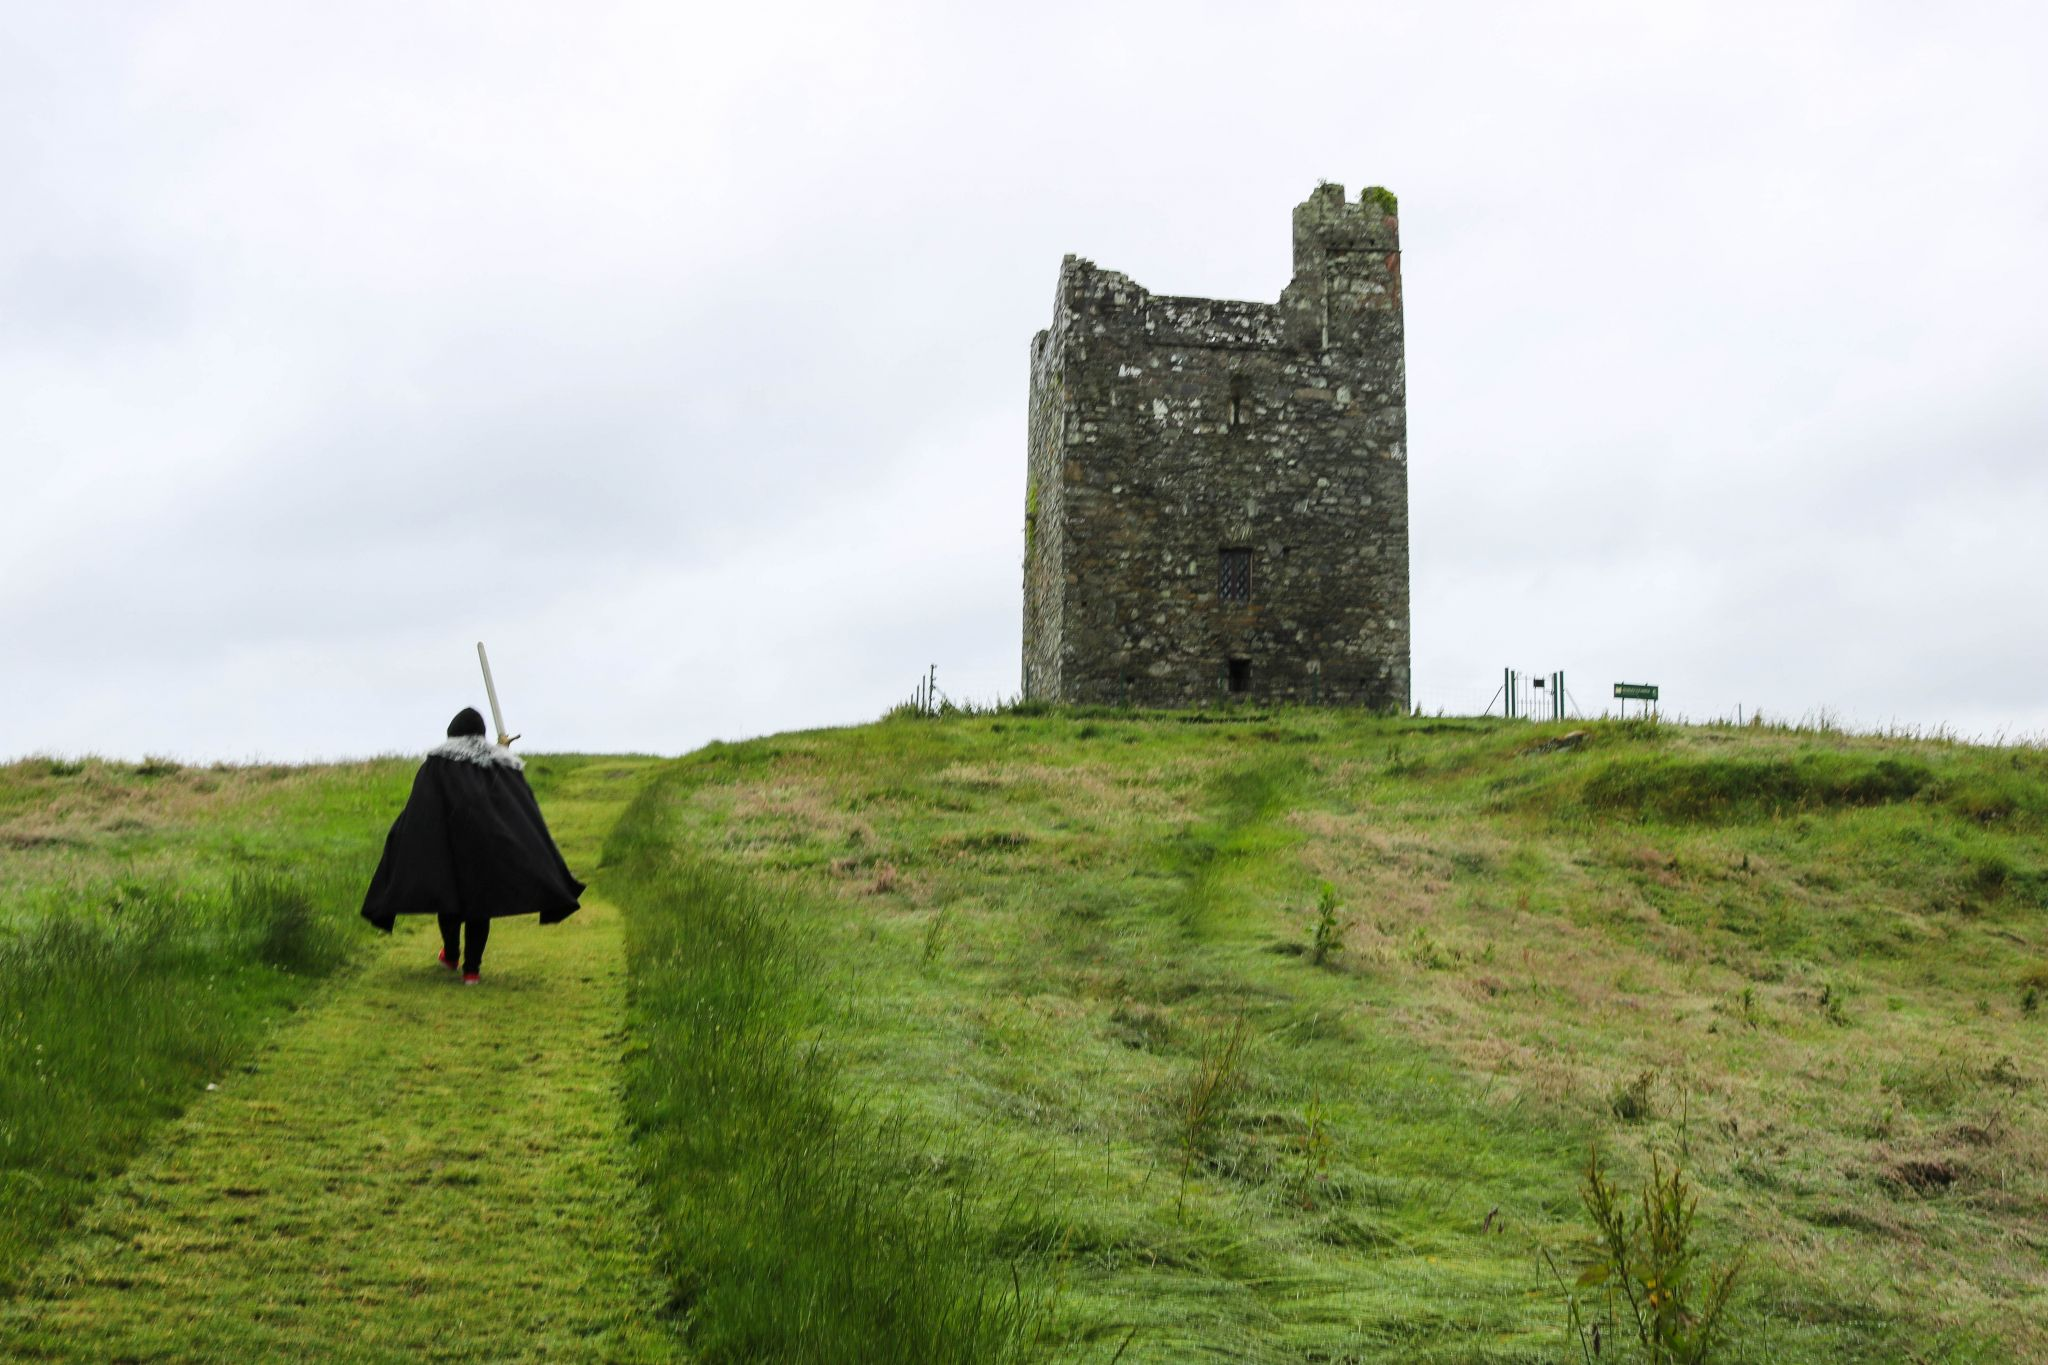 Exploring Westeros: A guide to amazing game of Thrones locations in Northern Ireland